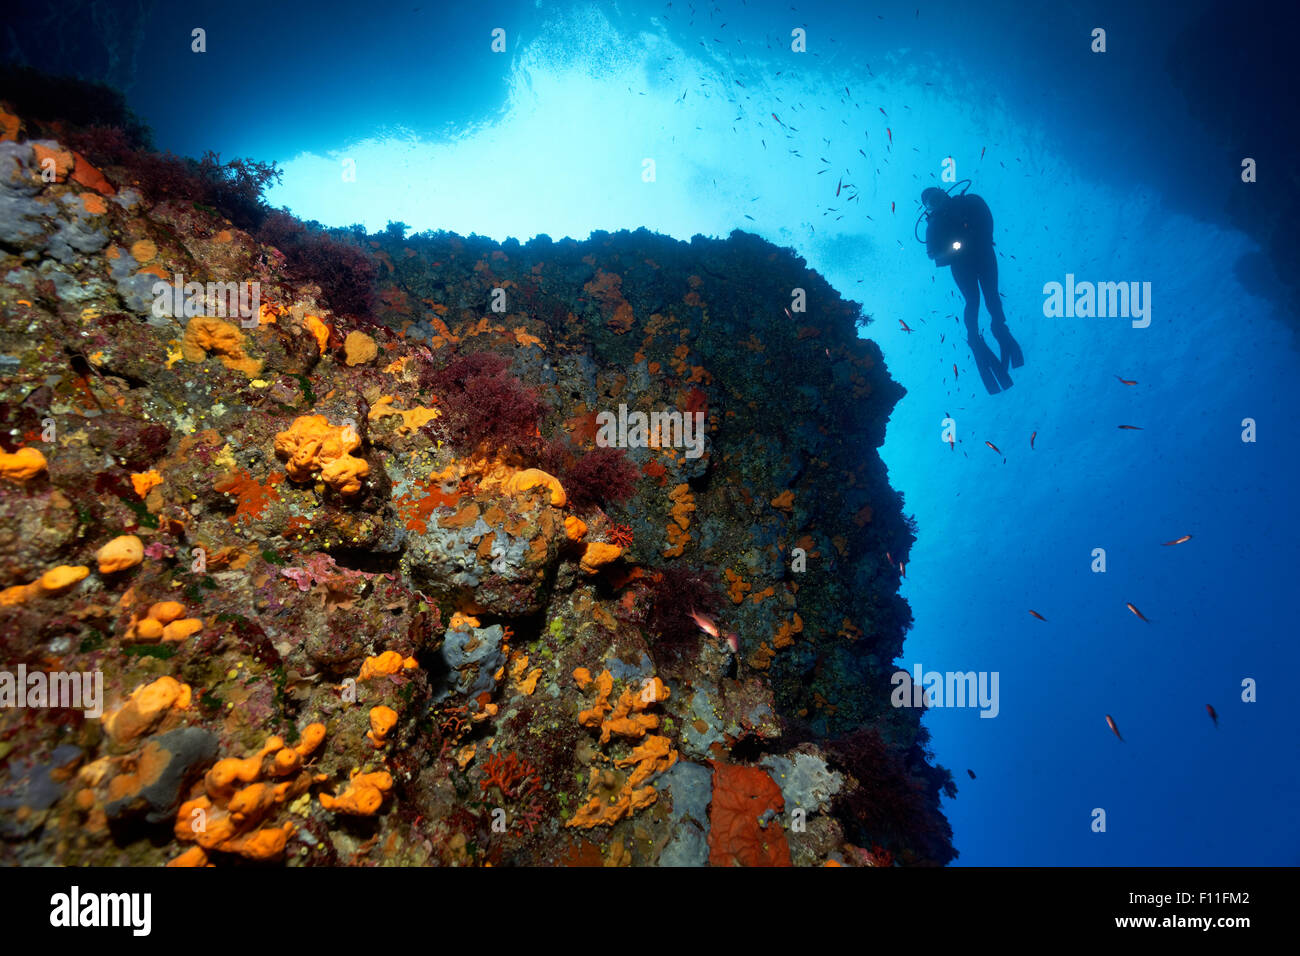 Diver by a steep rock face, thick growth with different sponges (Porifera), algae (Algae) and moss animals (Bryozoa), Stock Photo